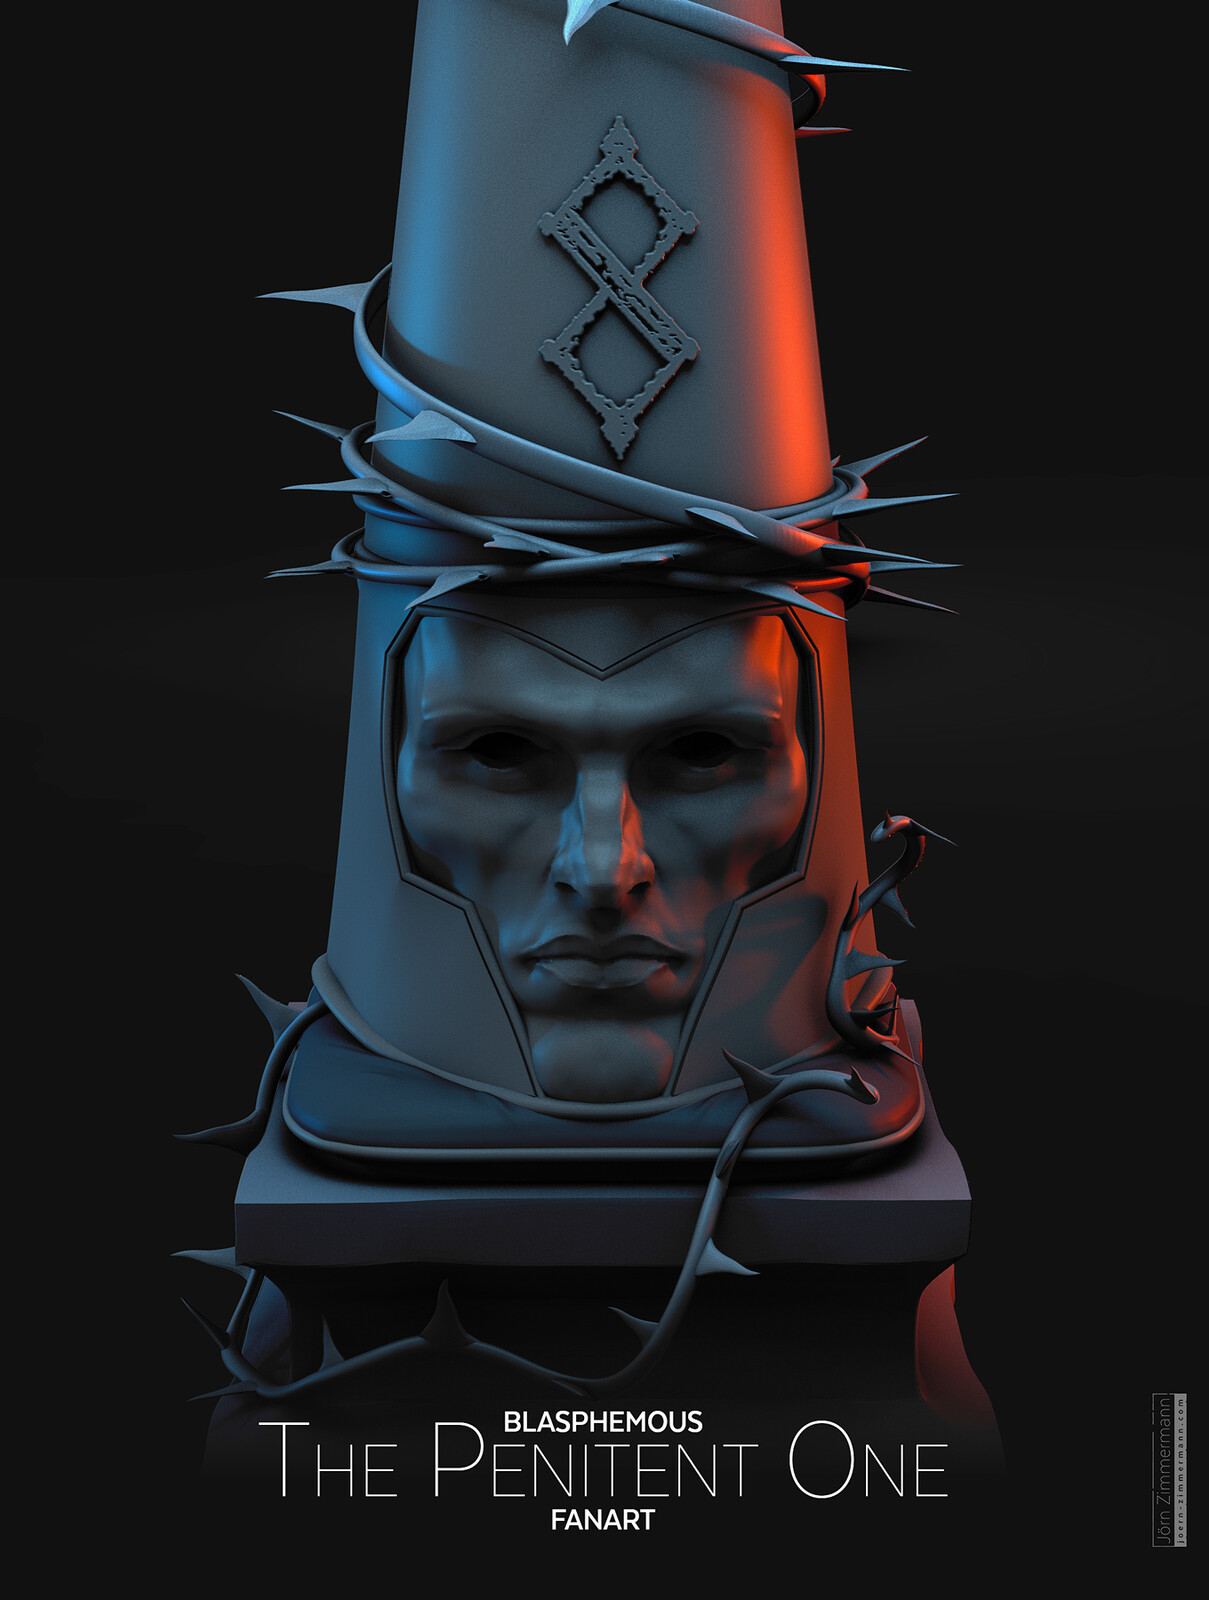 The Penitent One Helmet | Blasphemous Fanart Clay Render